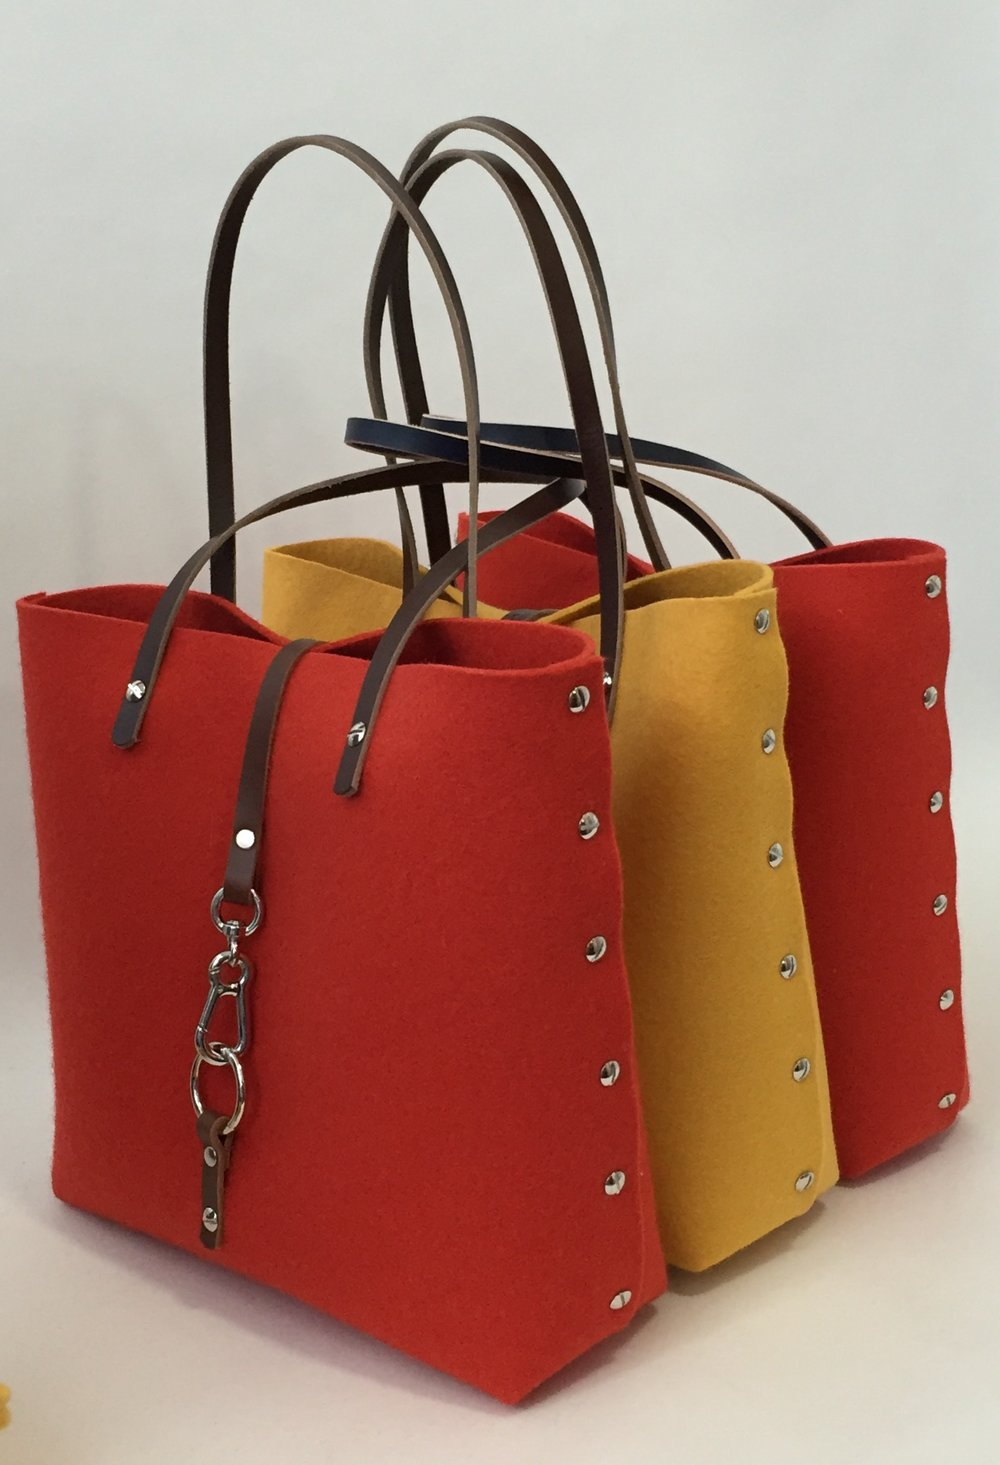 Cookie Totes in Saffron and Poppy Dark Brown Straps